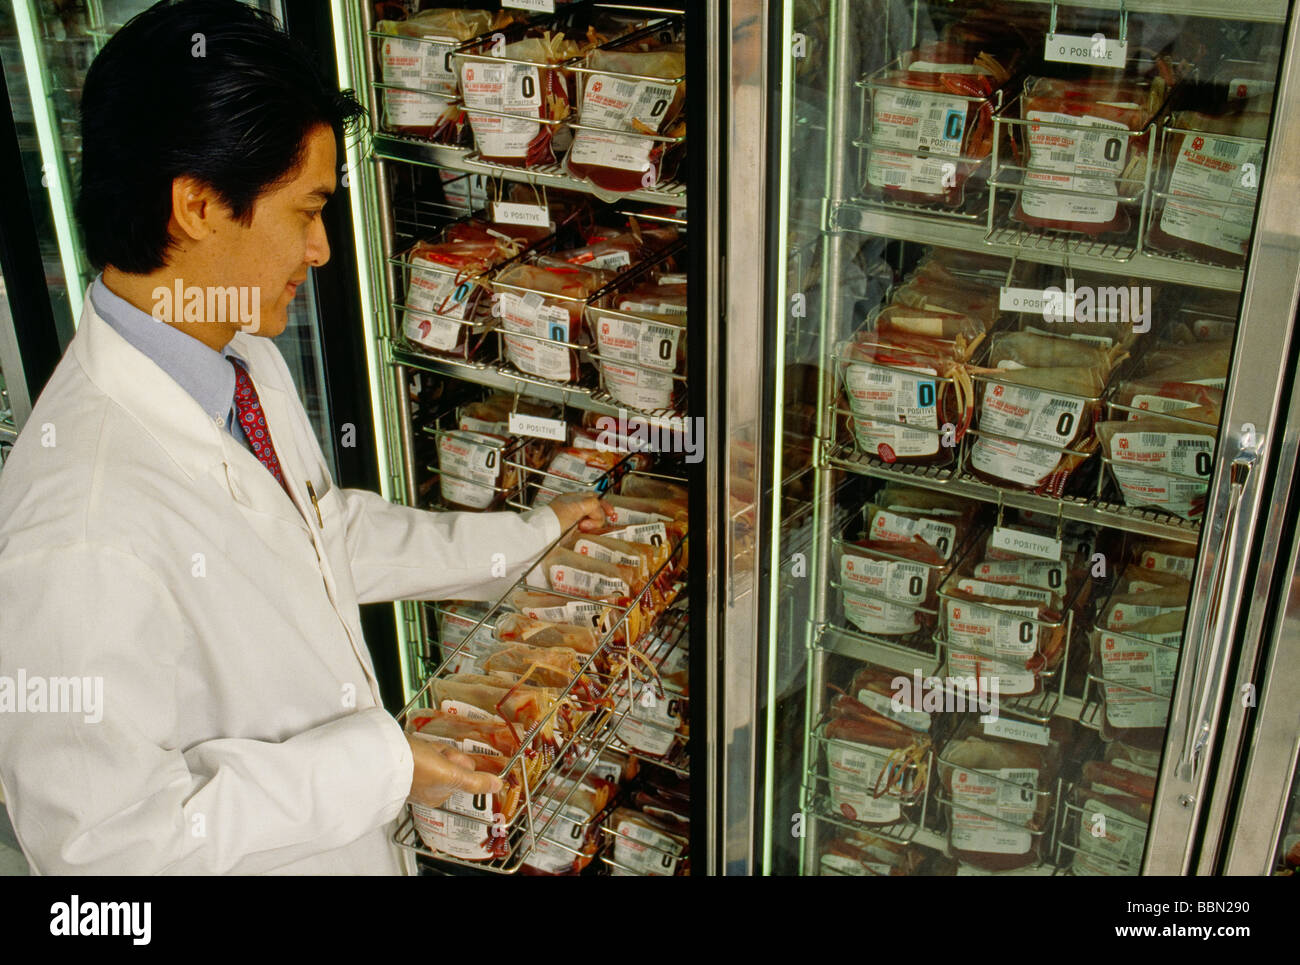 Technician pulling supply from refrigerated blood bank storage - Stock Image